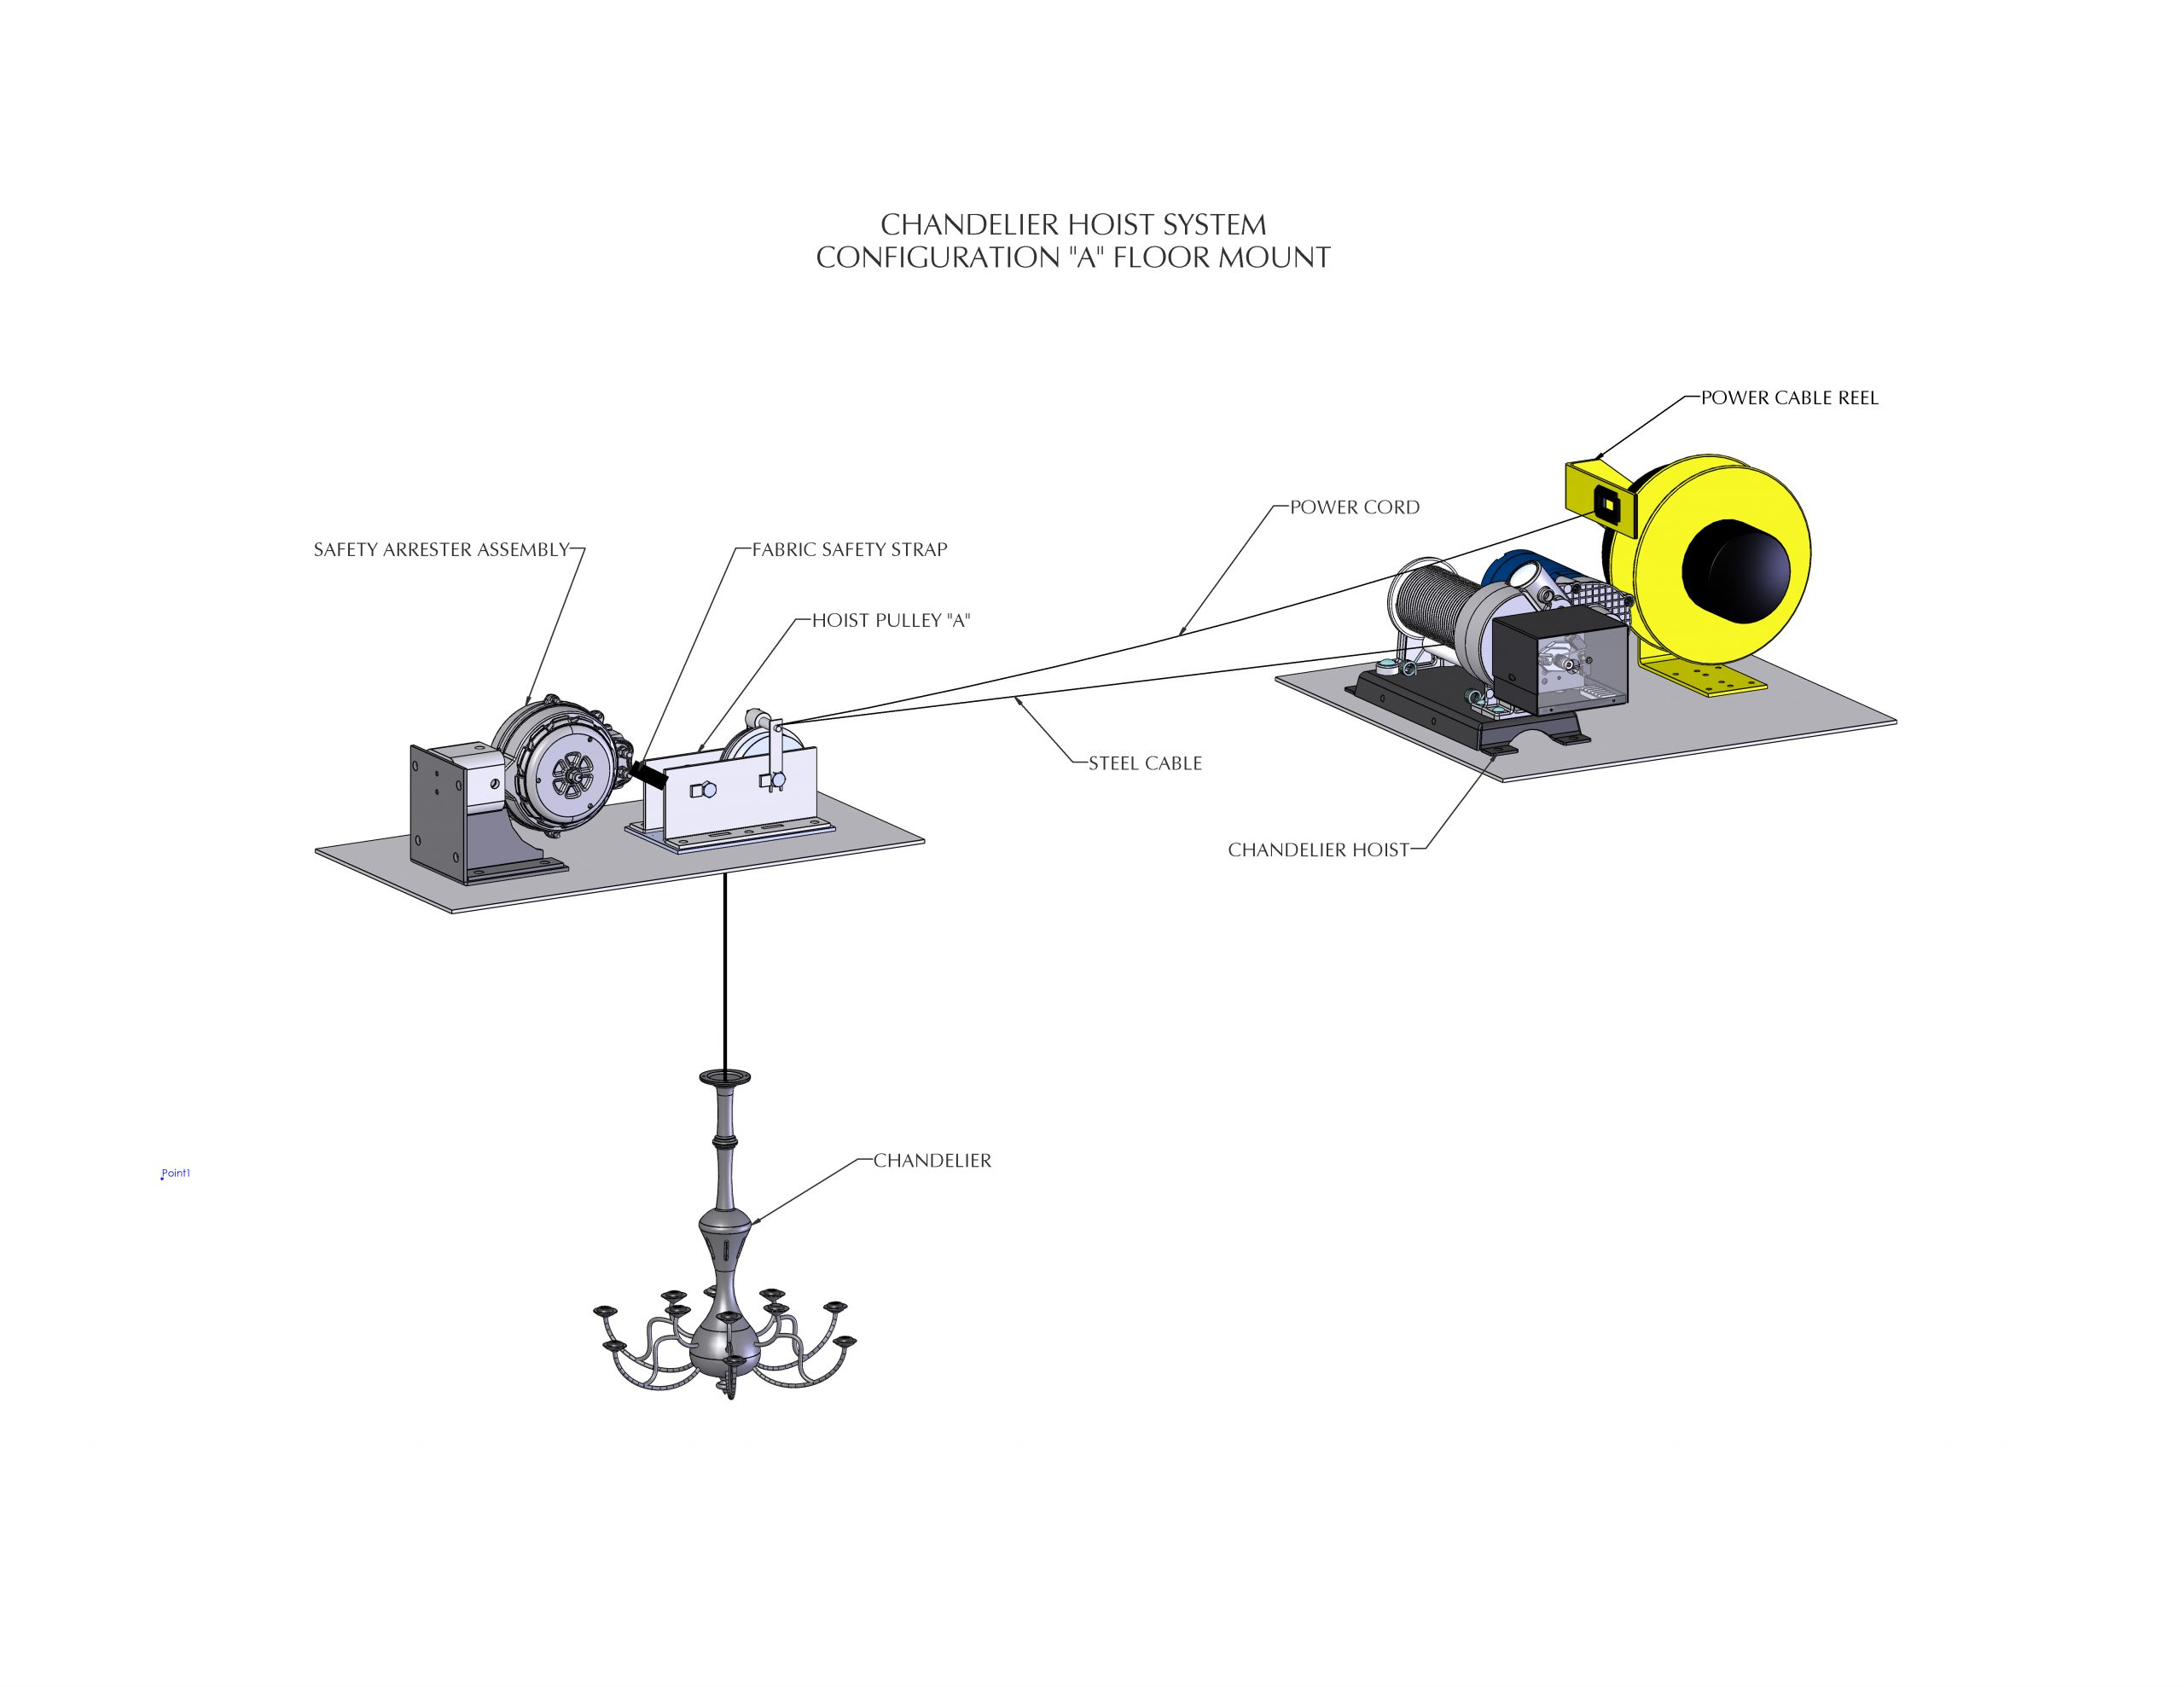 CHANDELIER WINCH CONFIGURATION A2